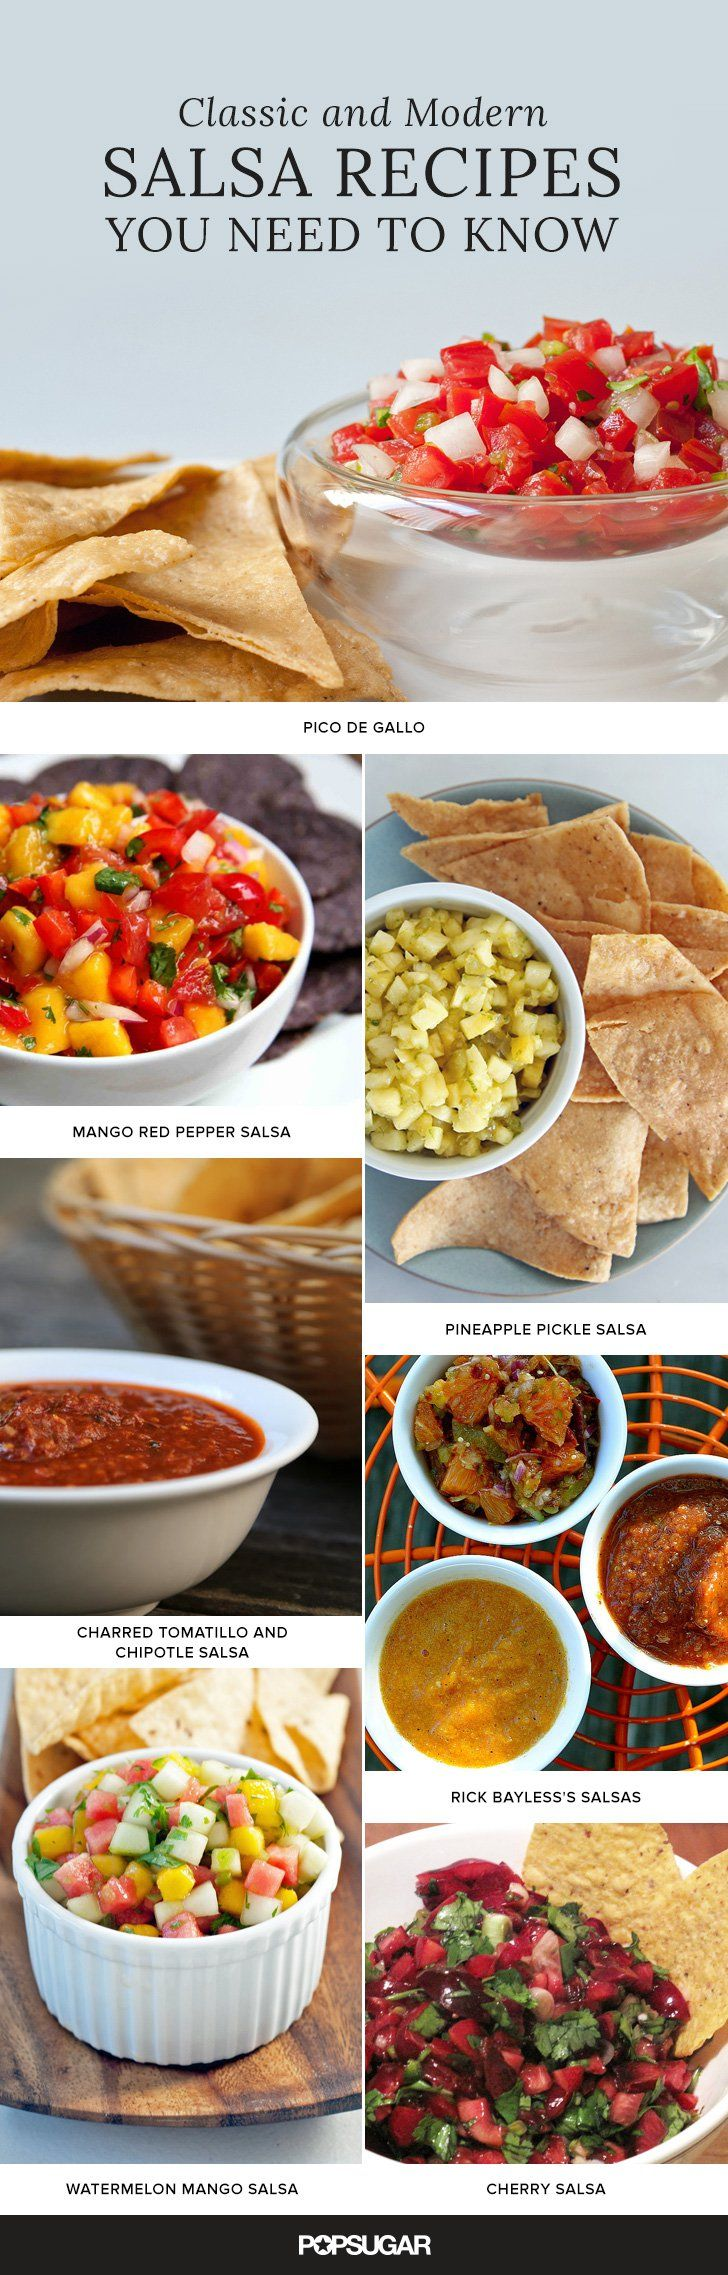 Salsa recipes for every type of taste.